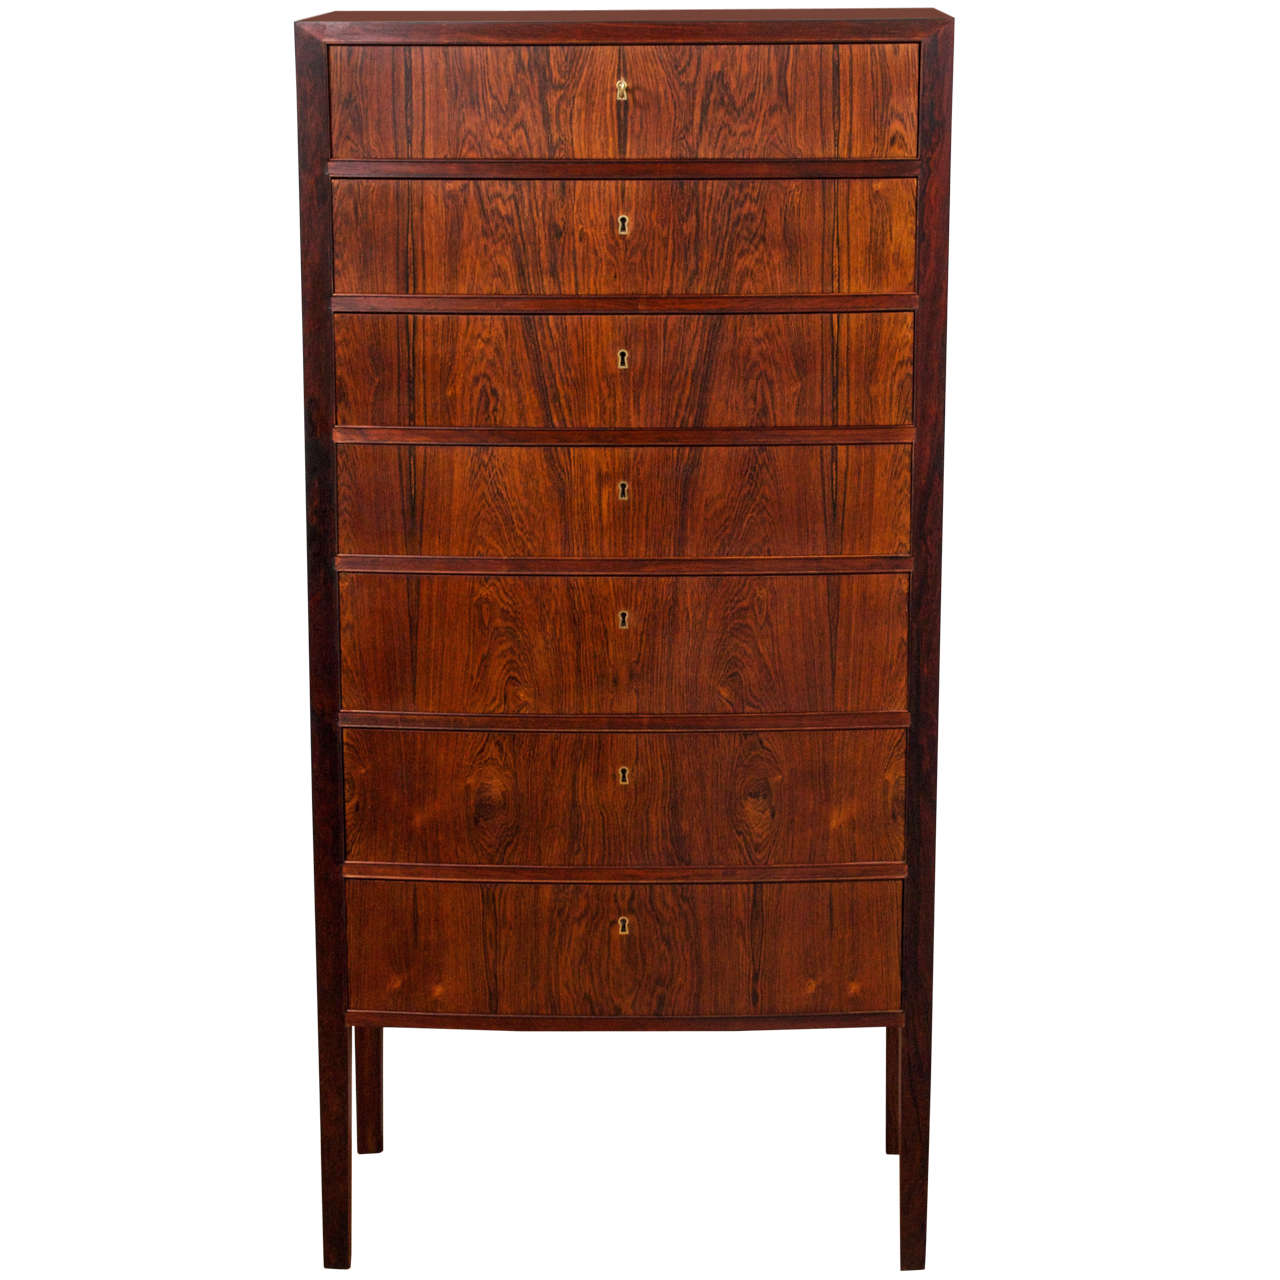 ole wanscher lingerie chest s for sale at stdibs - ole wanscher lingerie chest s